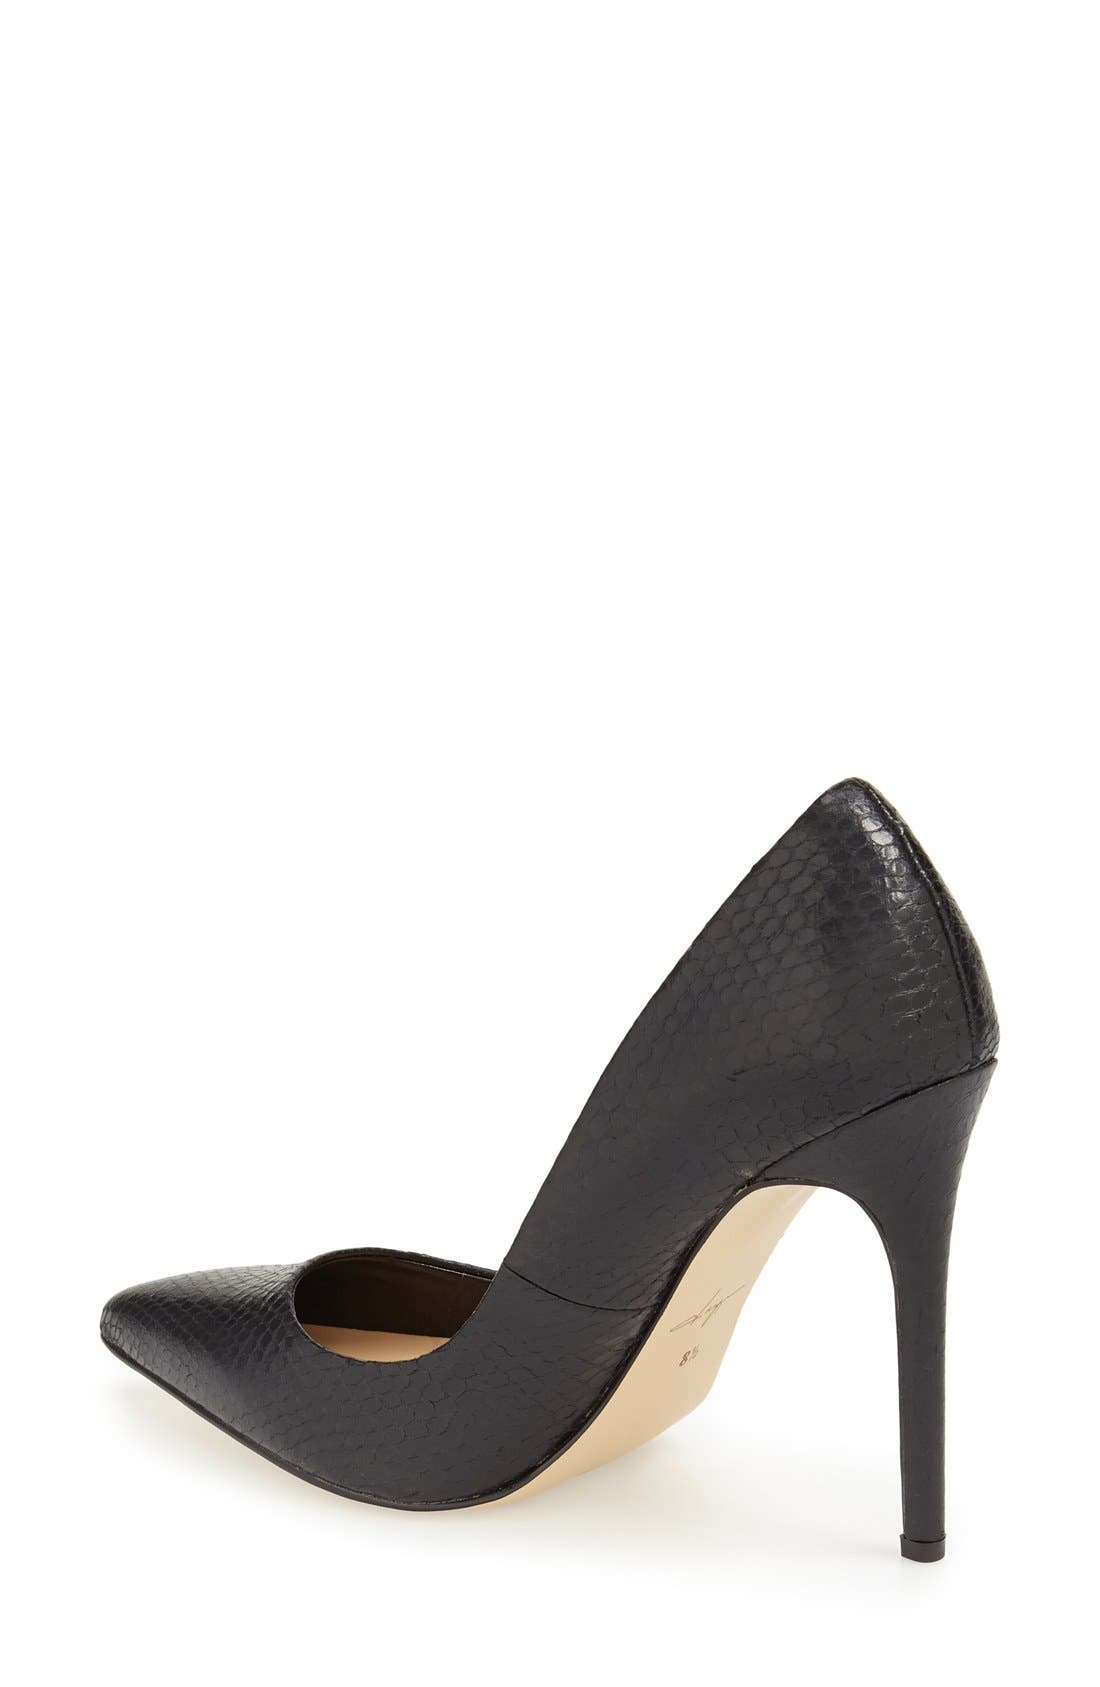 Alternate Image 2  - Daya by Zendaya 'Atmore' Pump (Women)